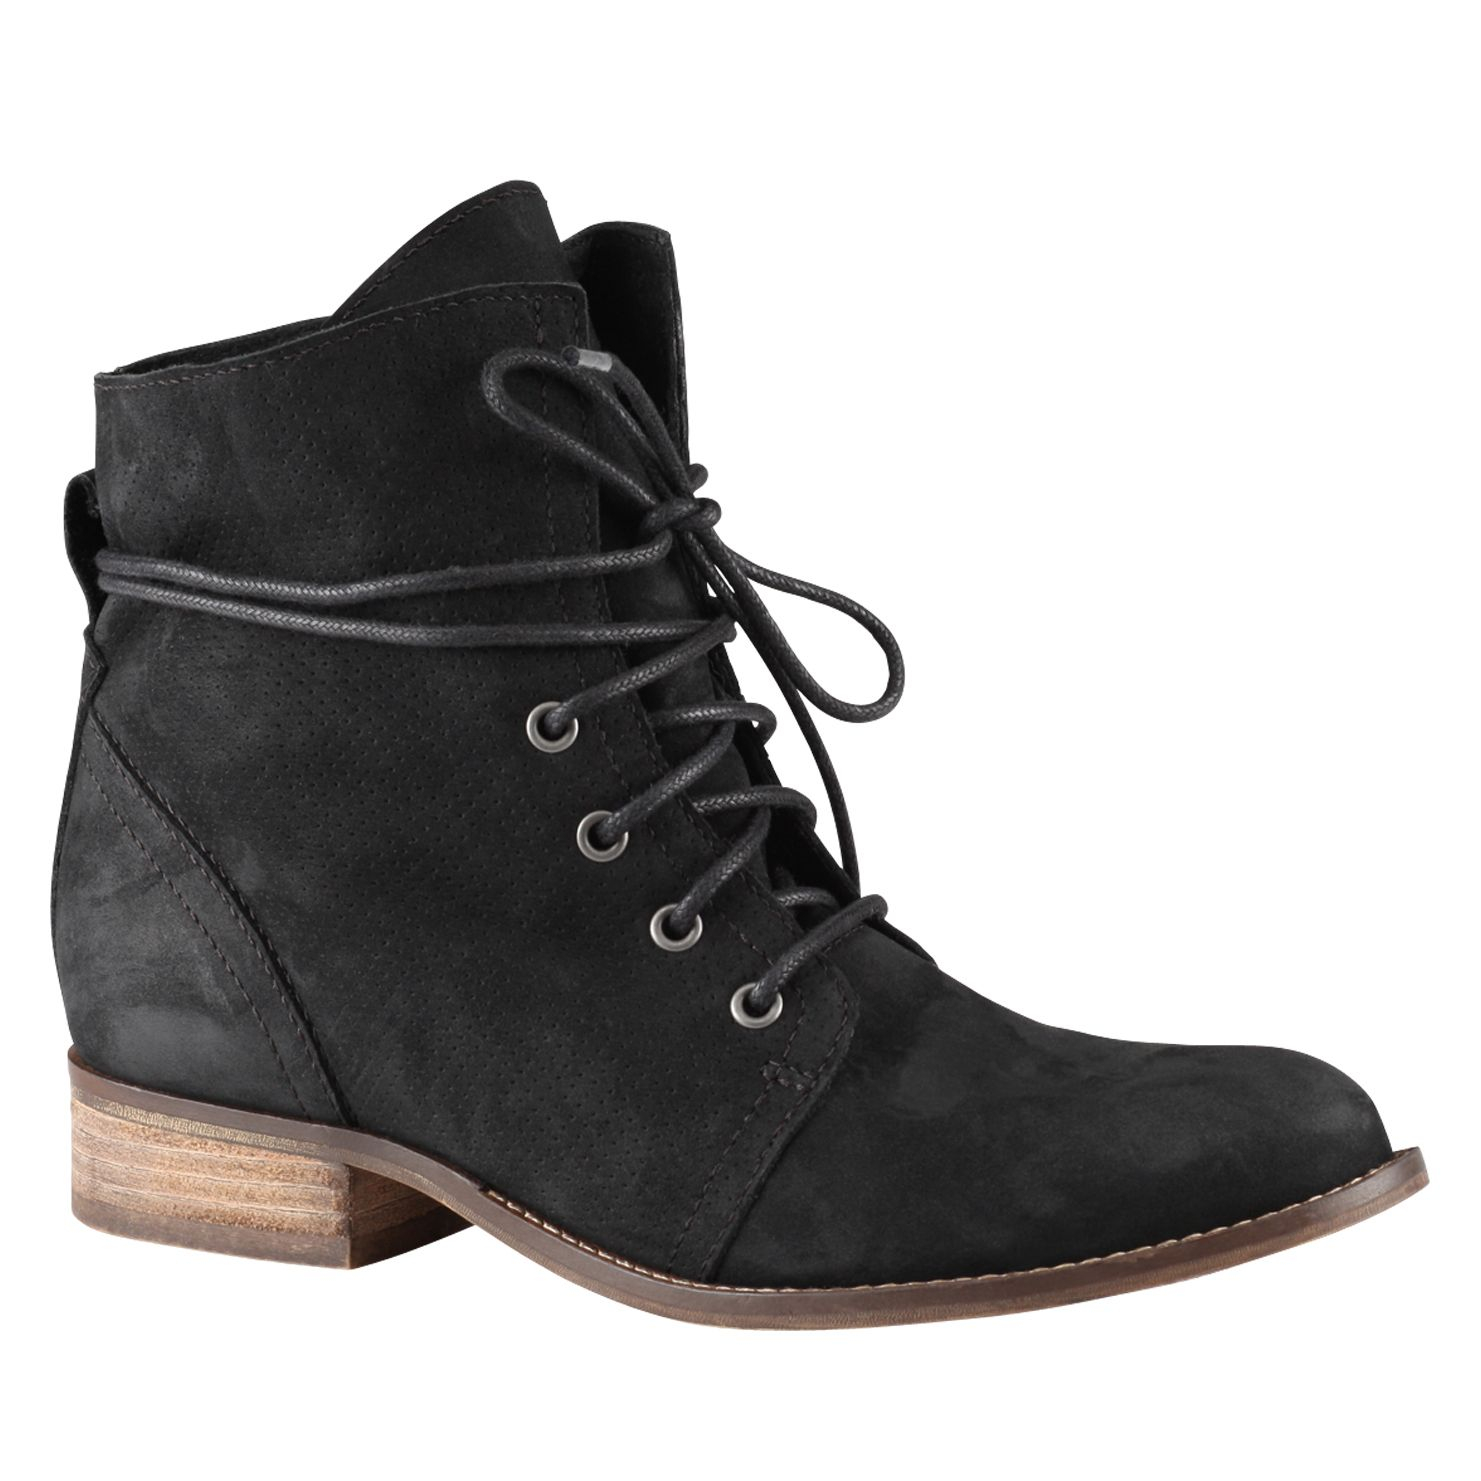 aldo prelidda almond toe lace up boots in black lyst